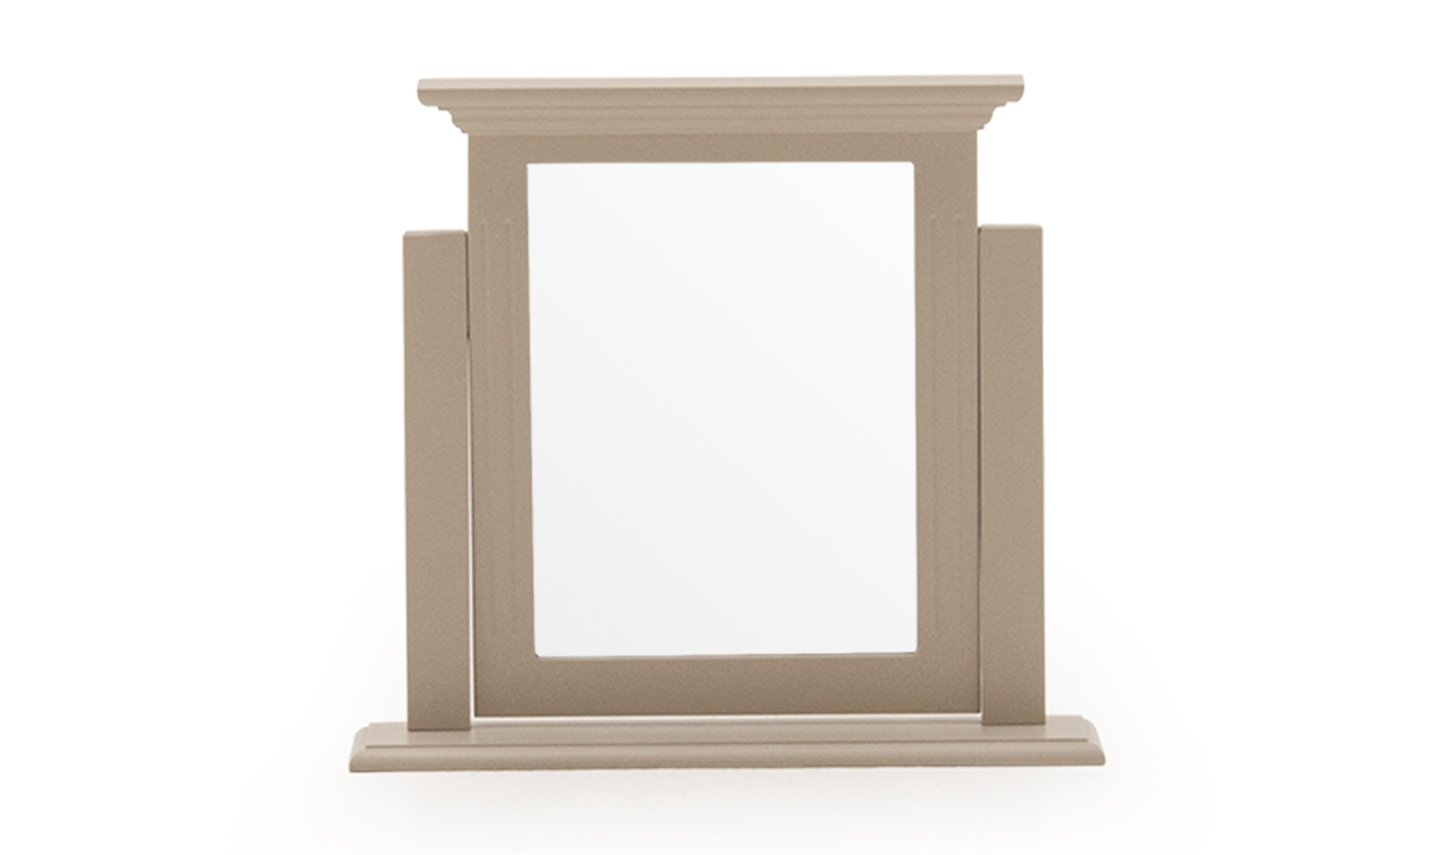 Oglinda Decorativa Lemn Pin Mdf Deauville Taupe Imagine